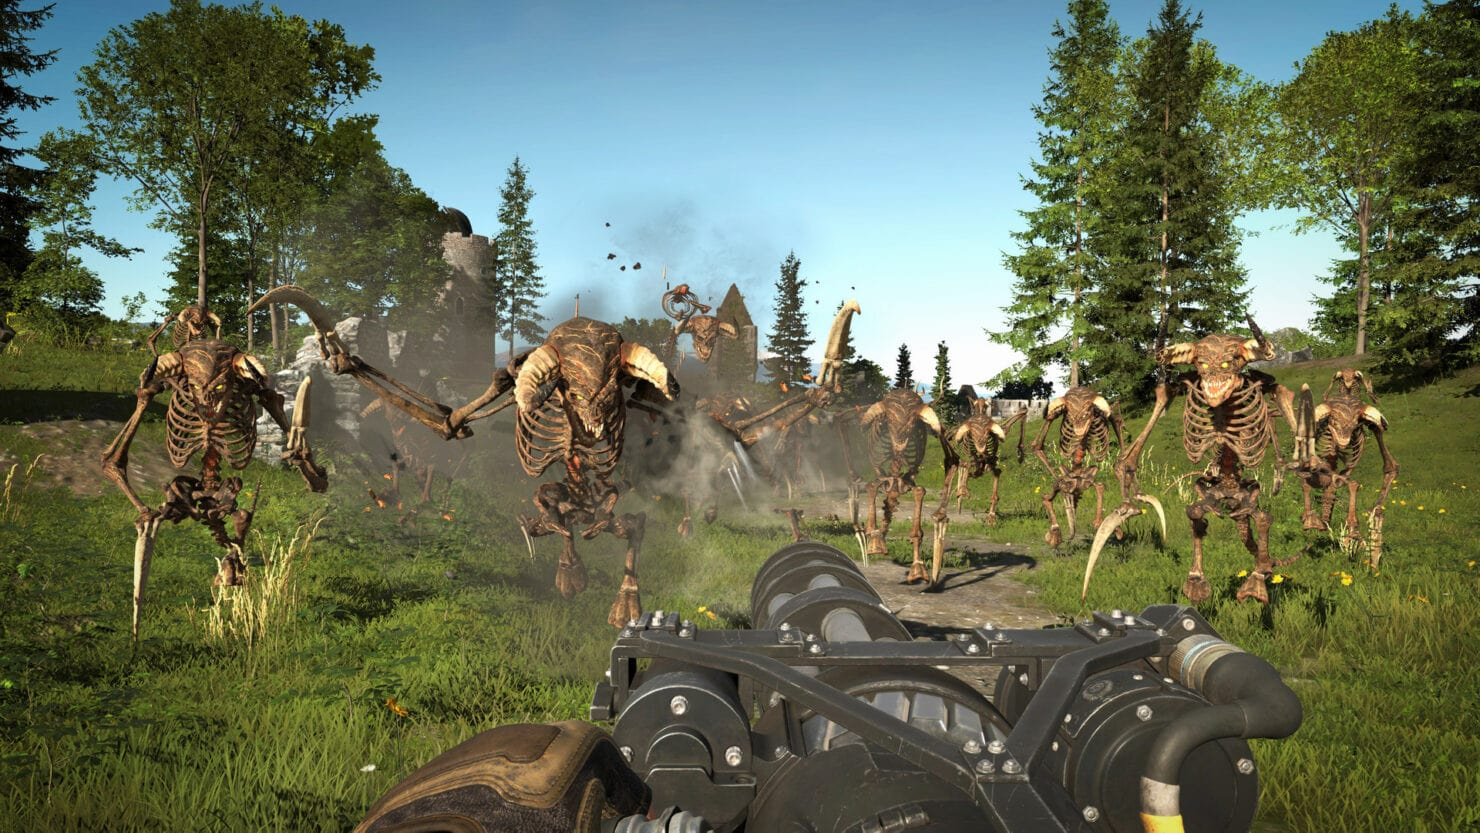 serious sam 4 screenshots new4 1480x833 min